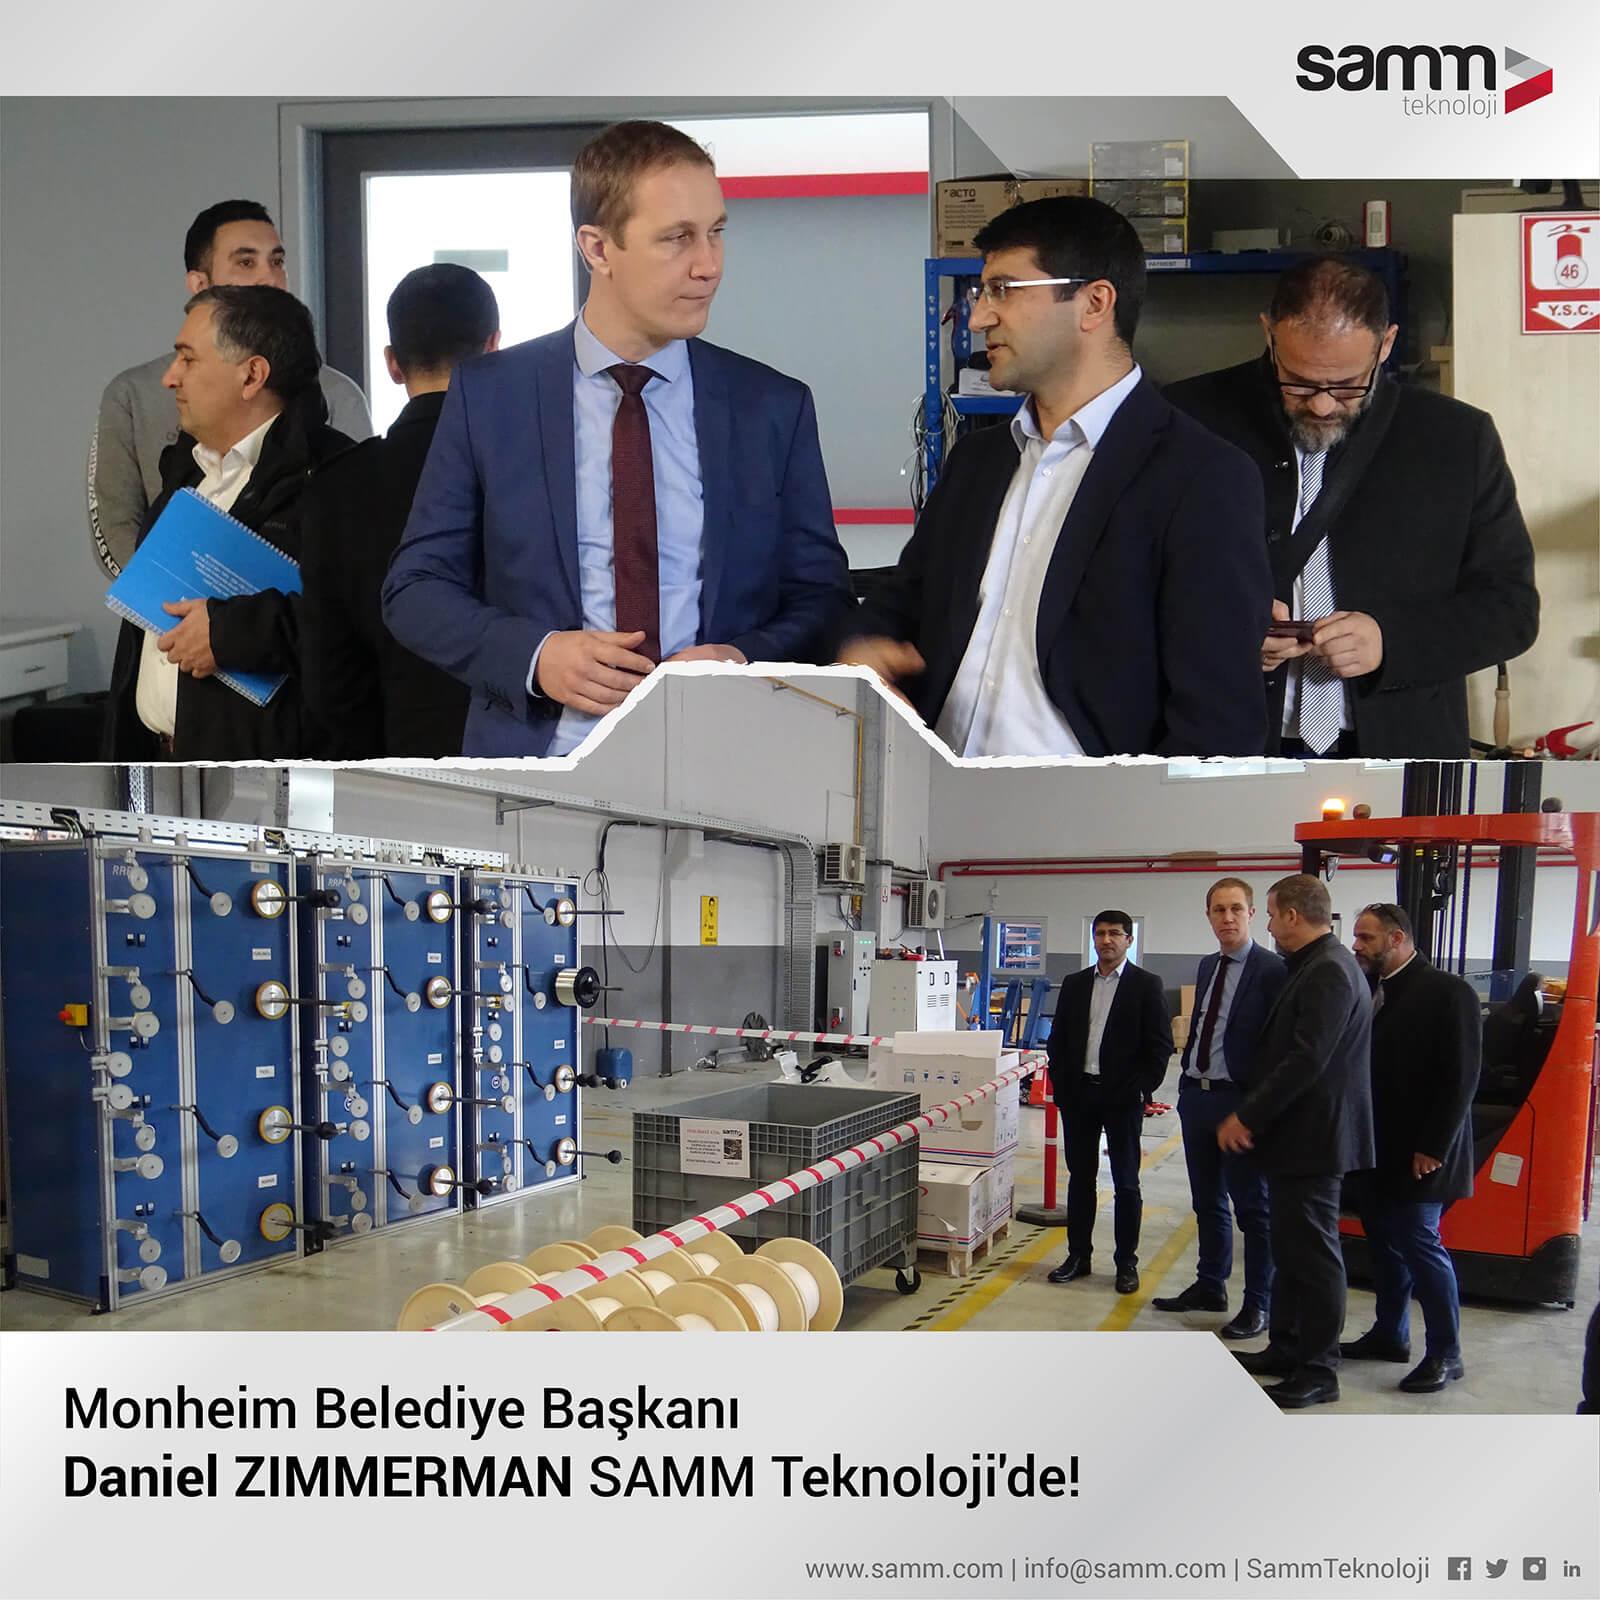 The Mayor of Monheim am Rhein Mr. Daniel Zimmerman Visits SAMM Teknoloji 2